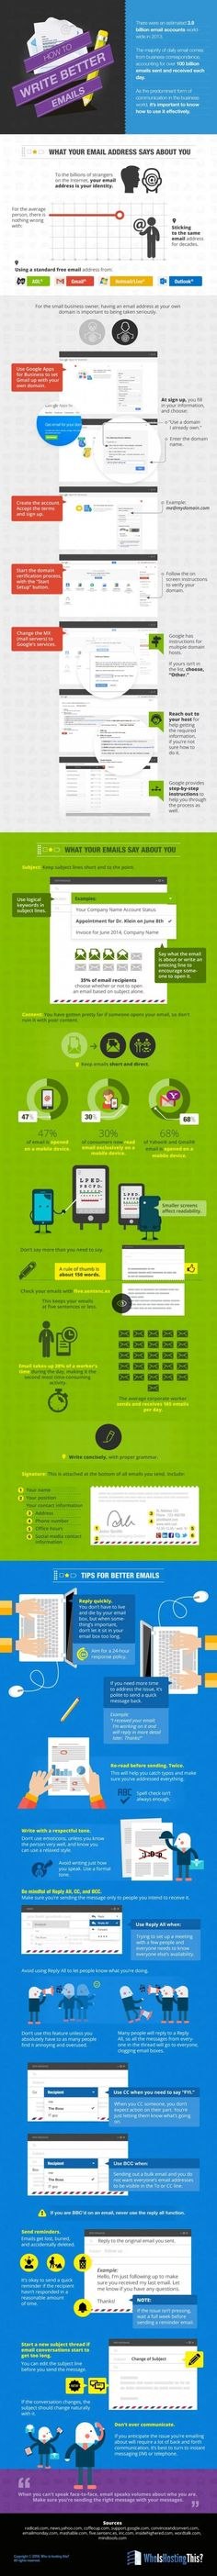 How to Write Better Emails (Infographic) - Email Marketing - Start your email marketing Now. - How to Write Better Emails (Infographic) Inbound Marketing, Marketing Digital, Internet Marketing, Online Marketing, Social Media Marketing, Marketing Tactics, Marketing Ideas, Content Marketing, Business Emails